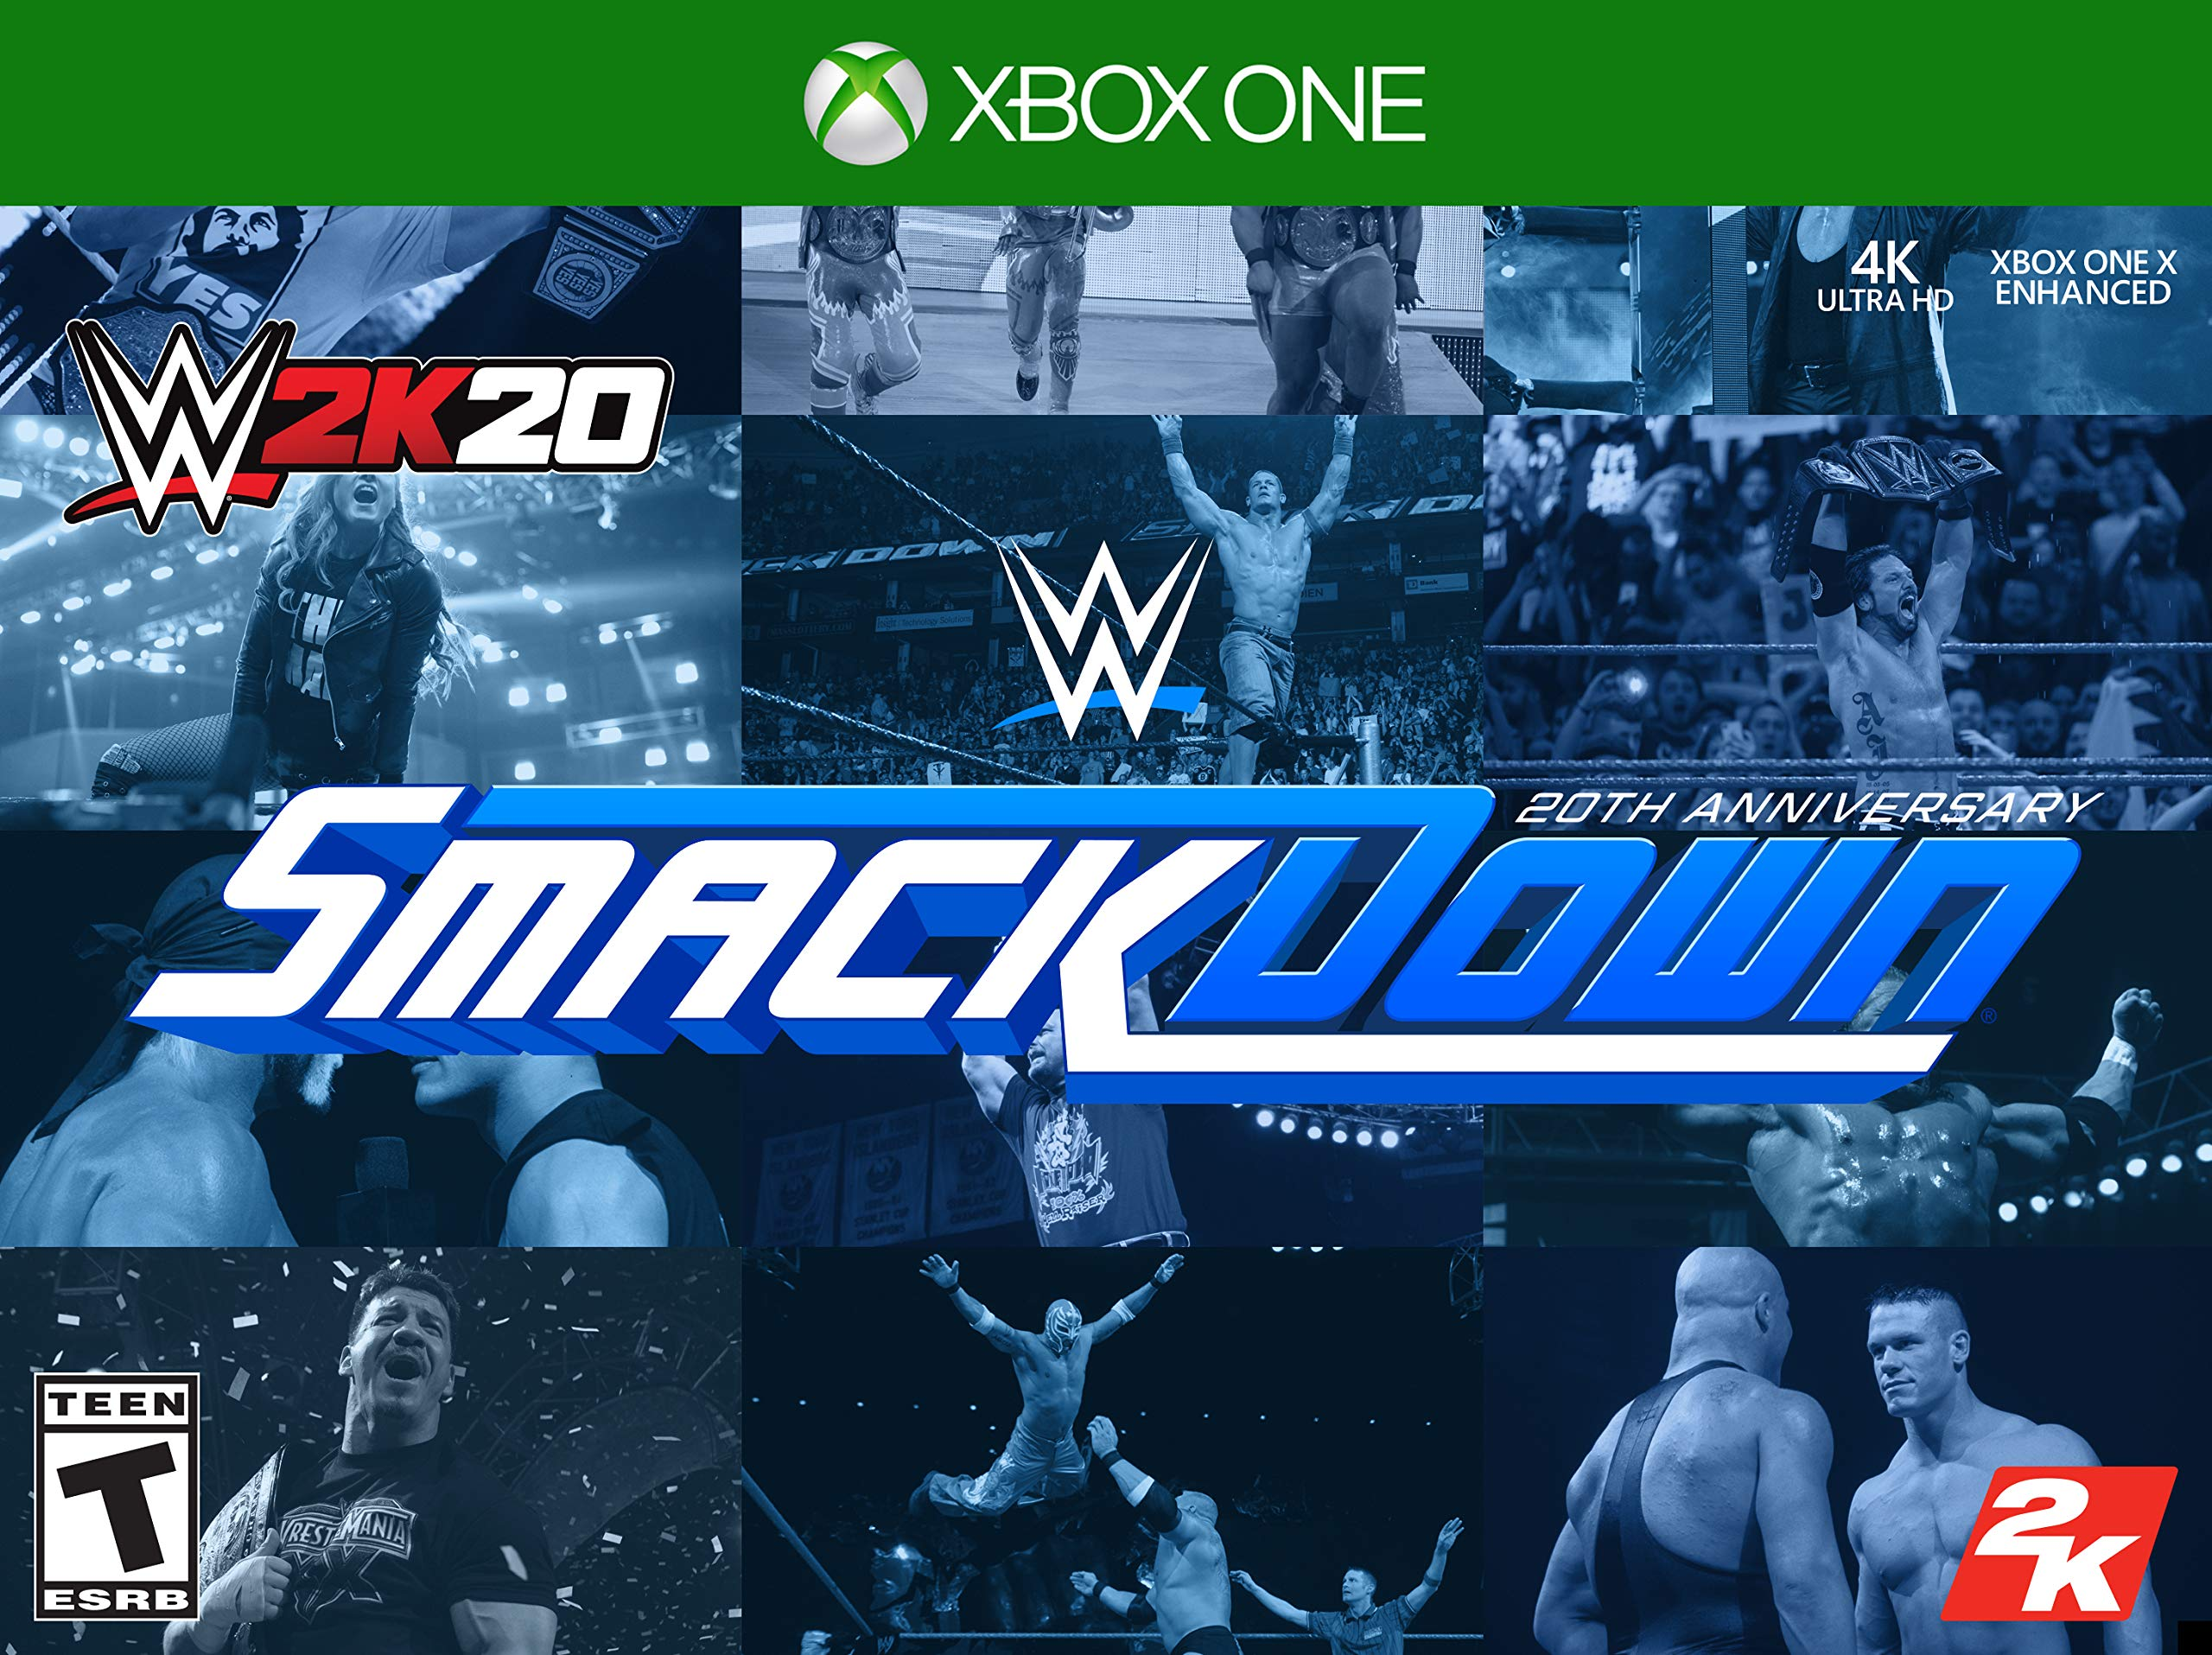 WWE 2K20 SmackDown! 20th Anniversary Edition - Xbox One